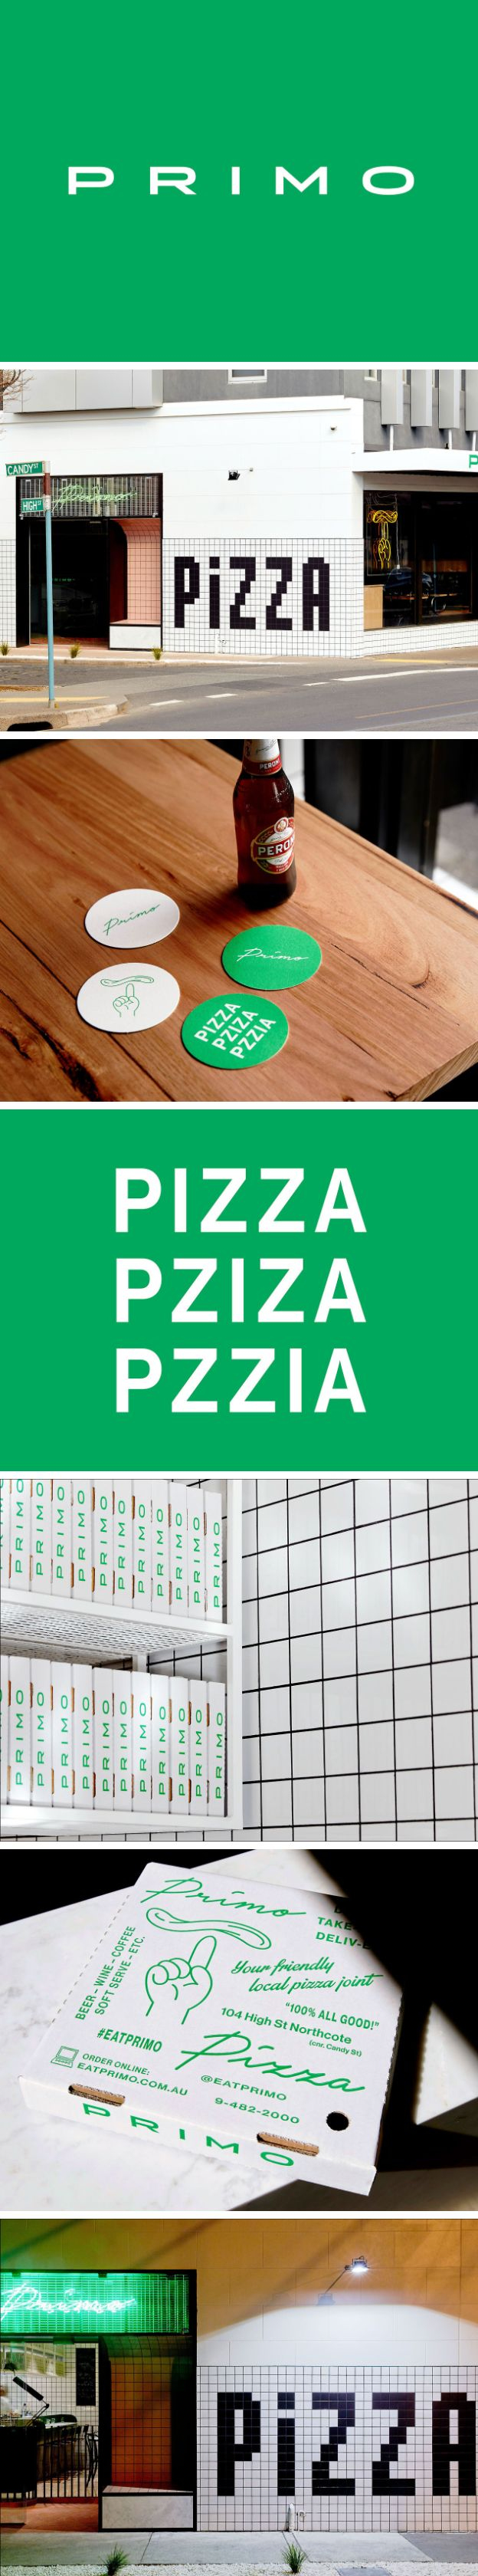 Brand Identity for Primo Pizza by Never Now